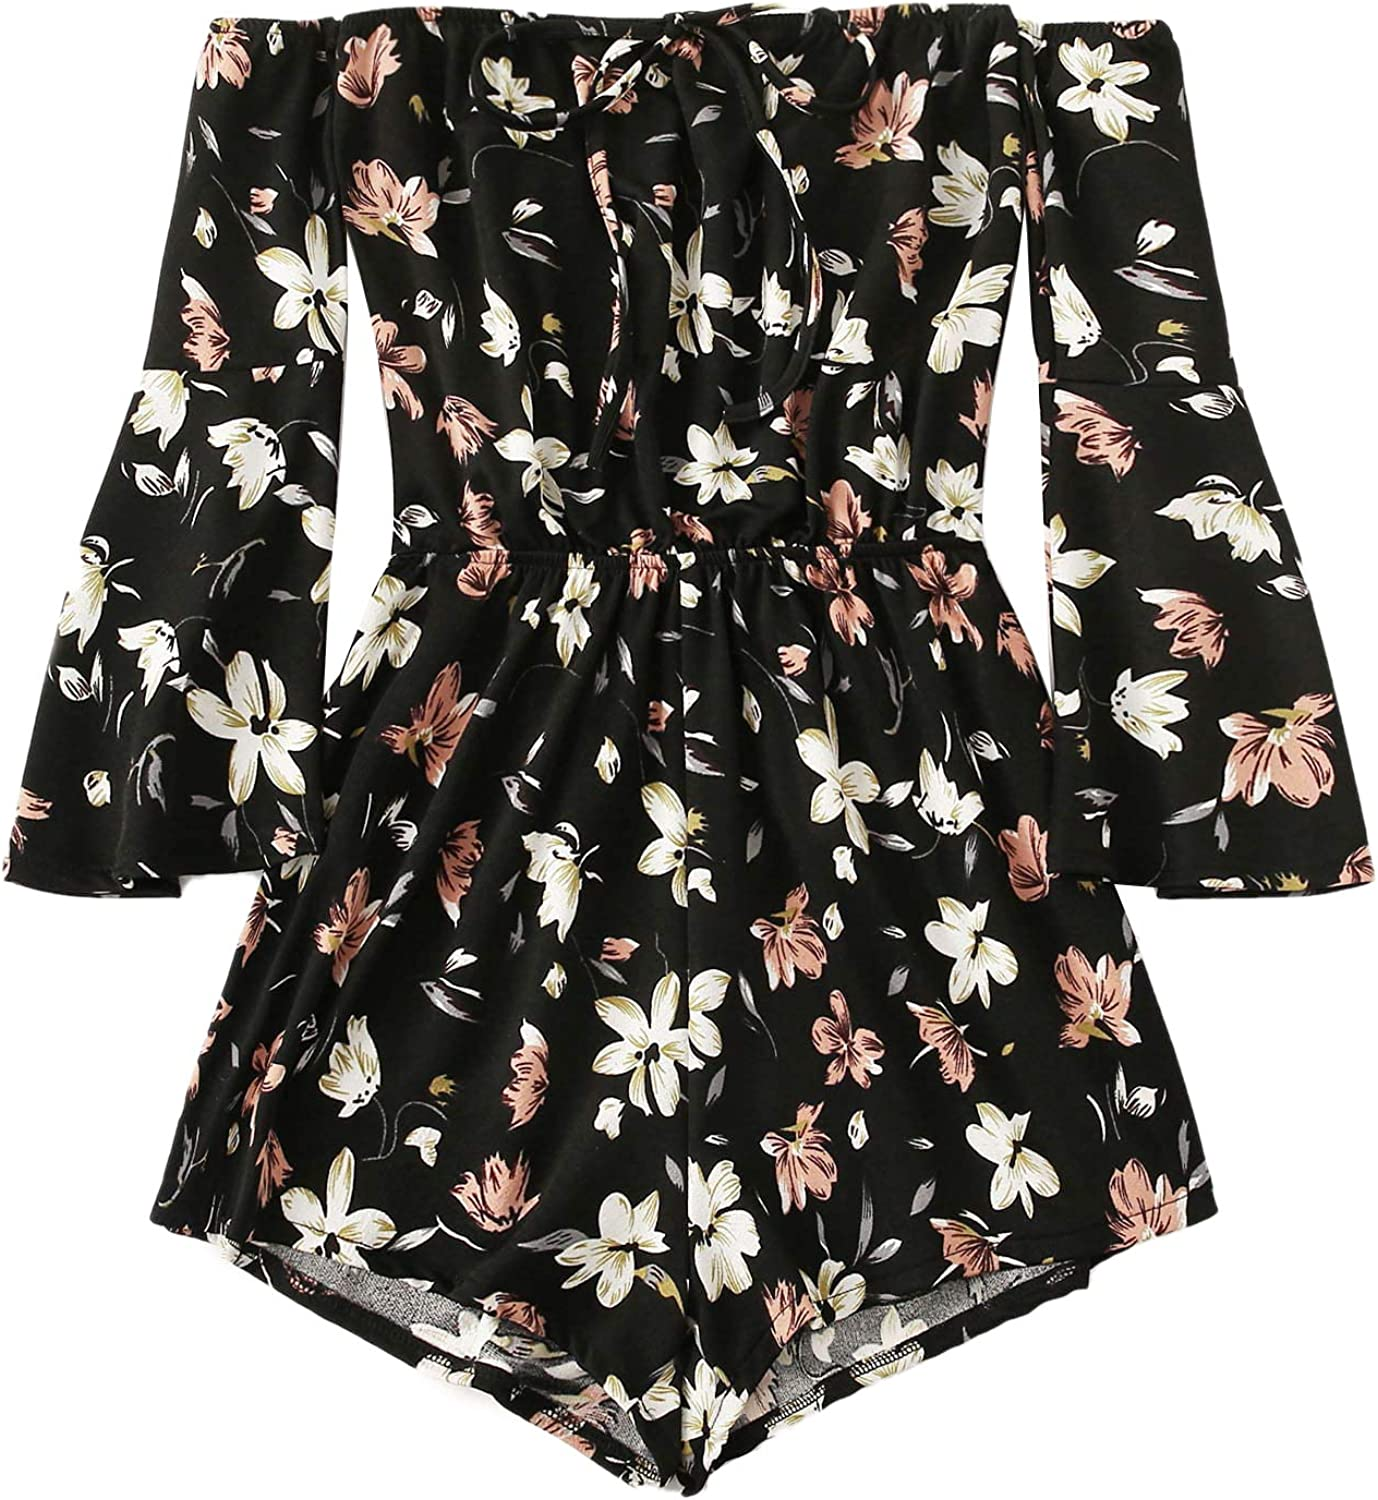 MakeMeChic Women's Casual Floral Print One Piece Knot Front Off Shoulder Romper Playsuit